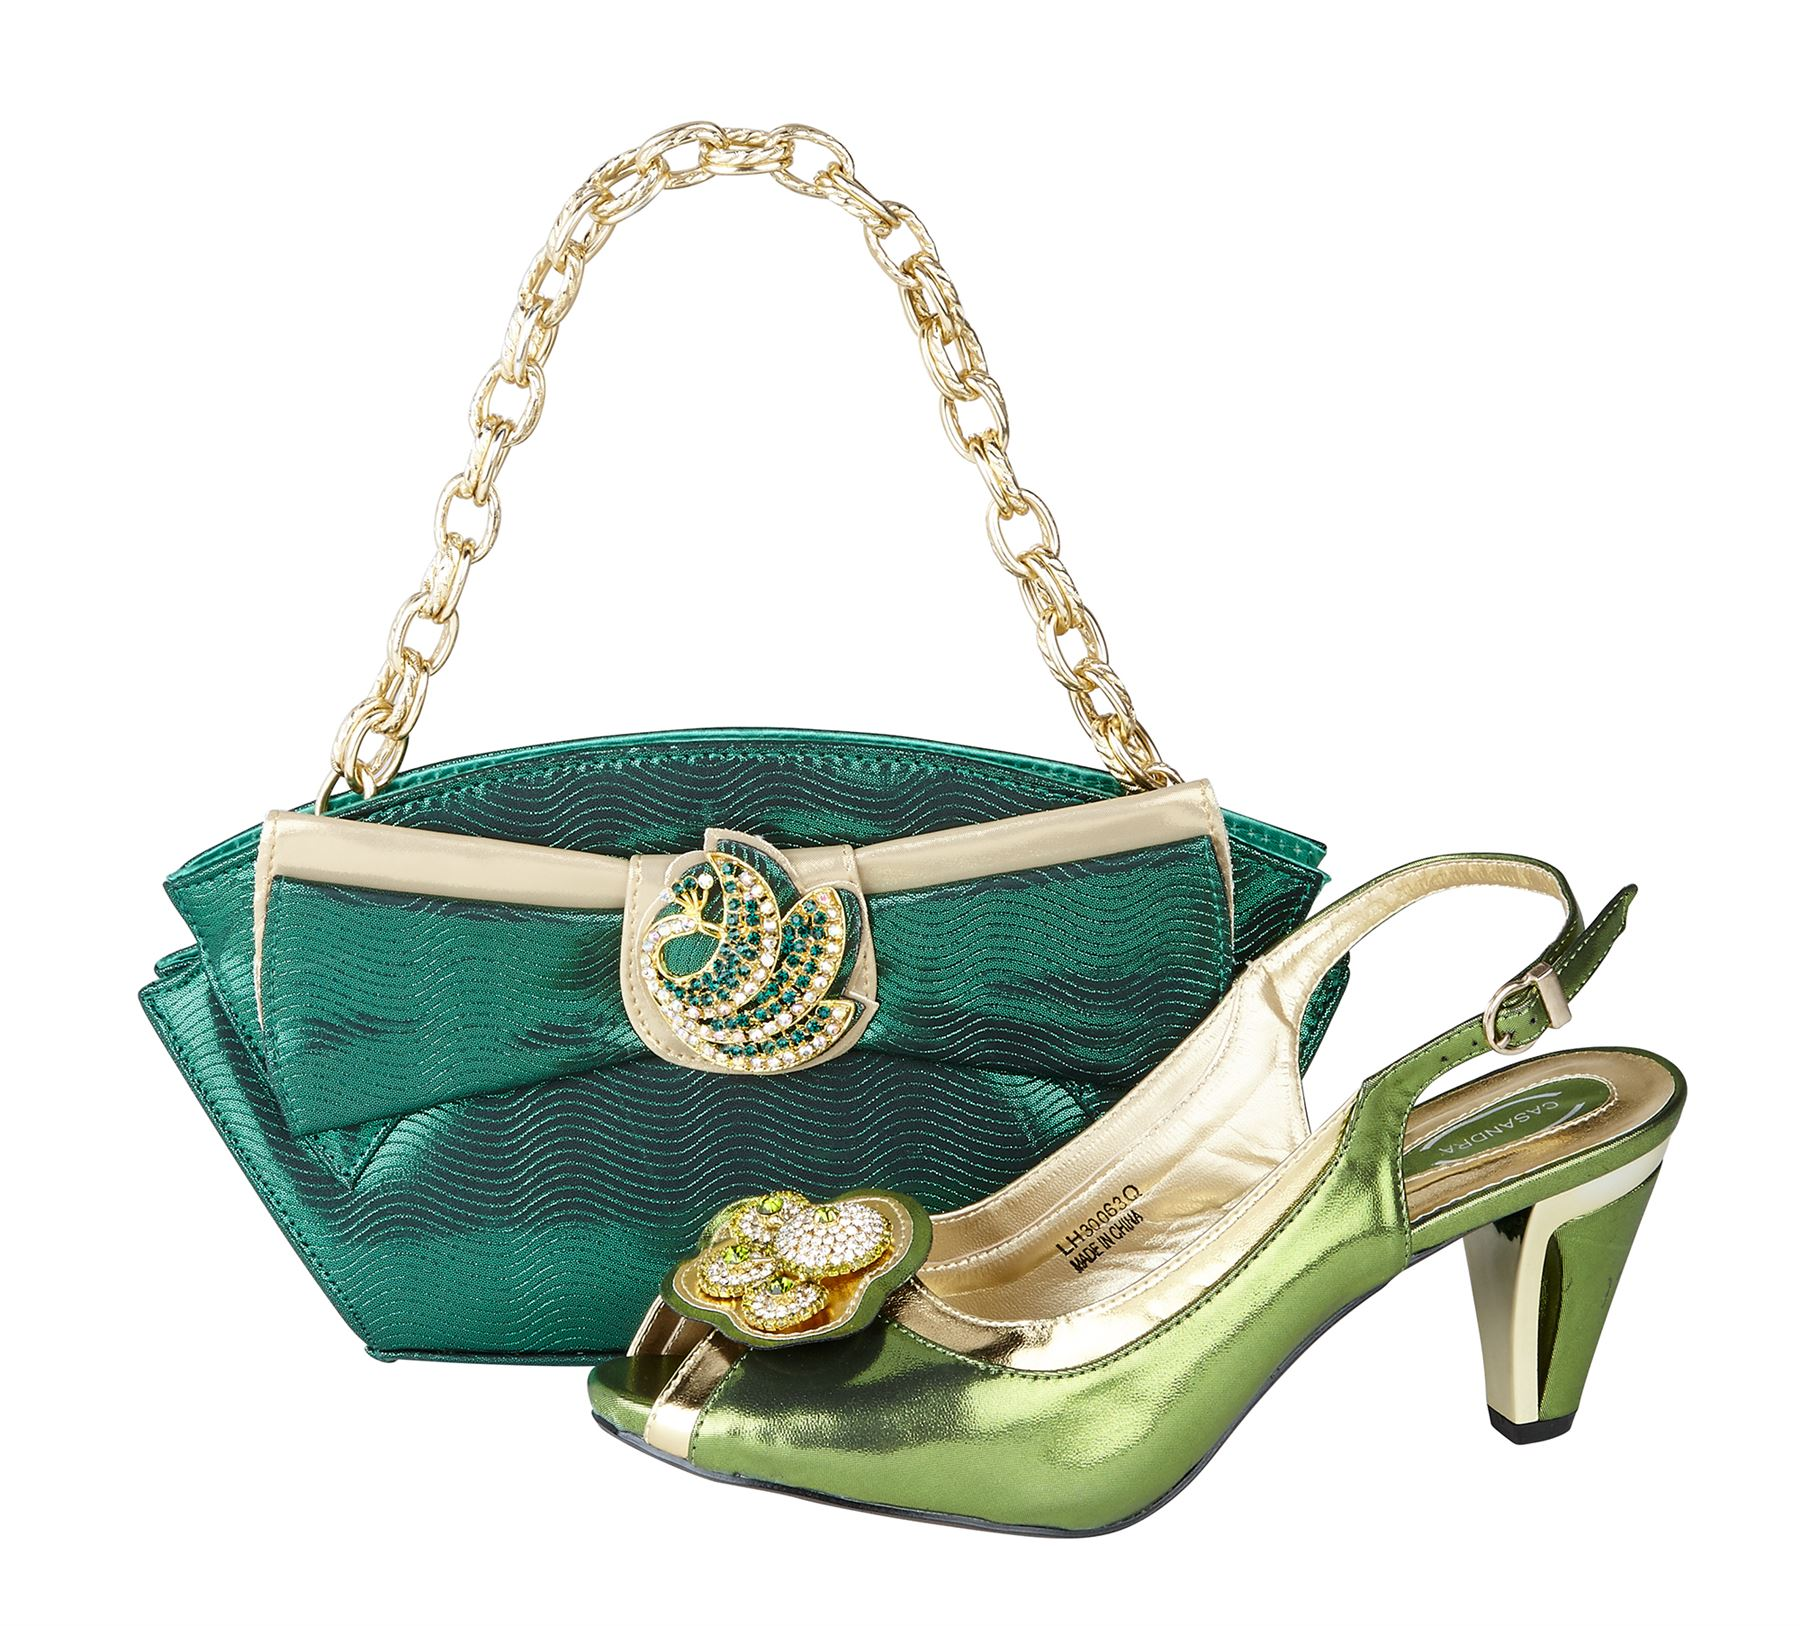 Excellent Fashion Shoes Matching Handbagsgood PU Leather With Shoes And Bag